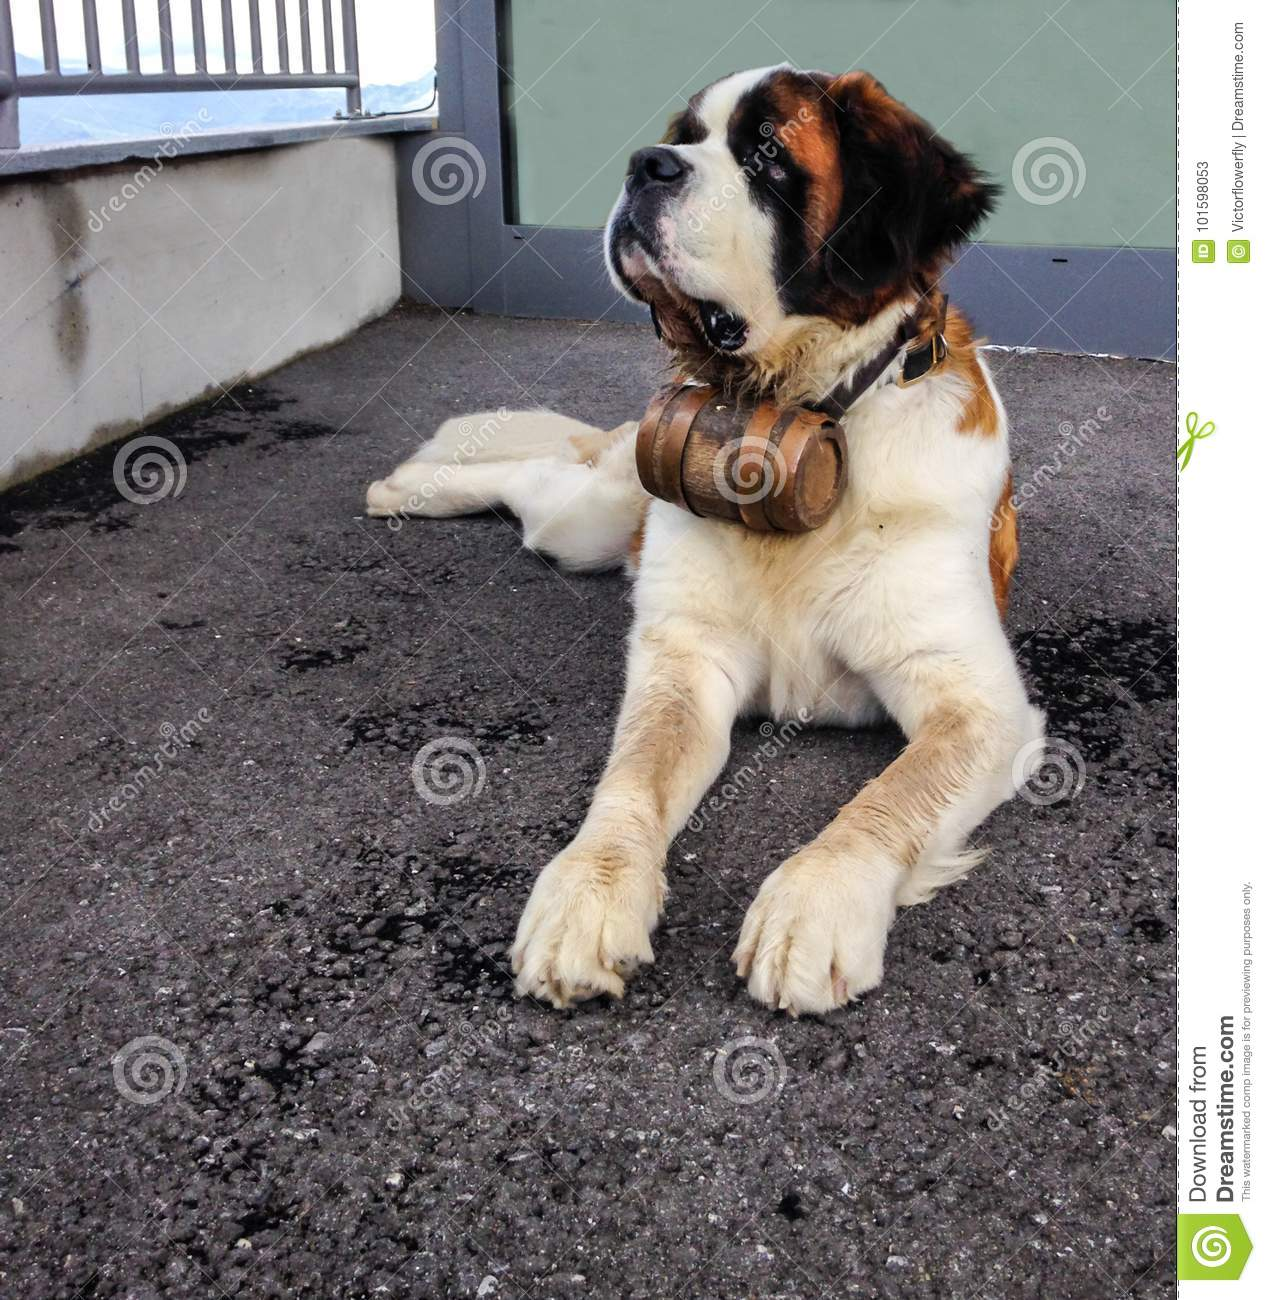 St Bernard Dog With The Iconic Barrel St Bernard Is A